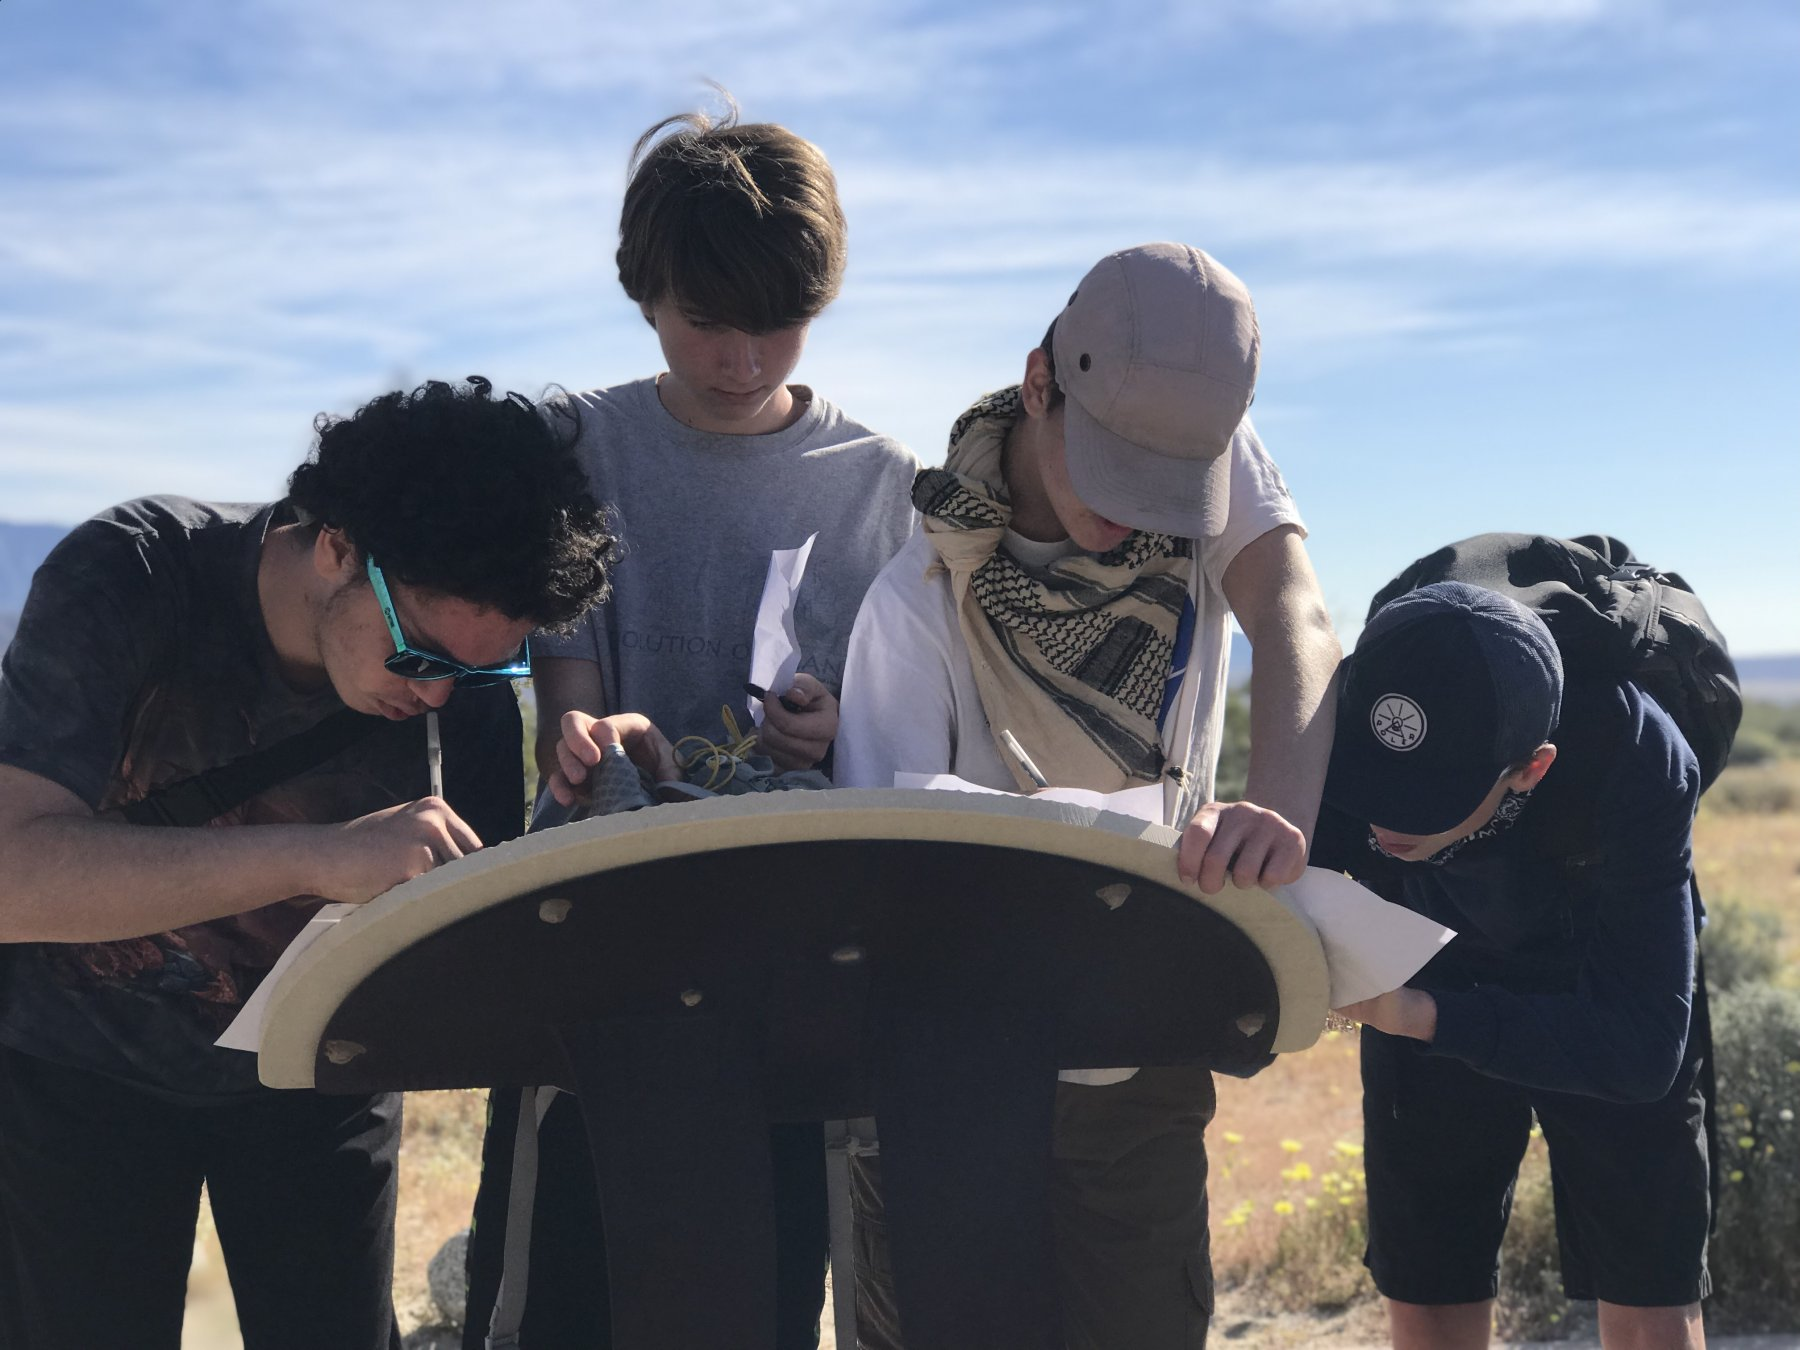 HS Students outdoor exploration